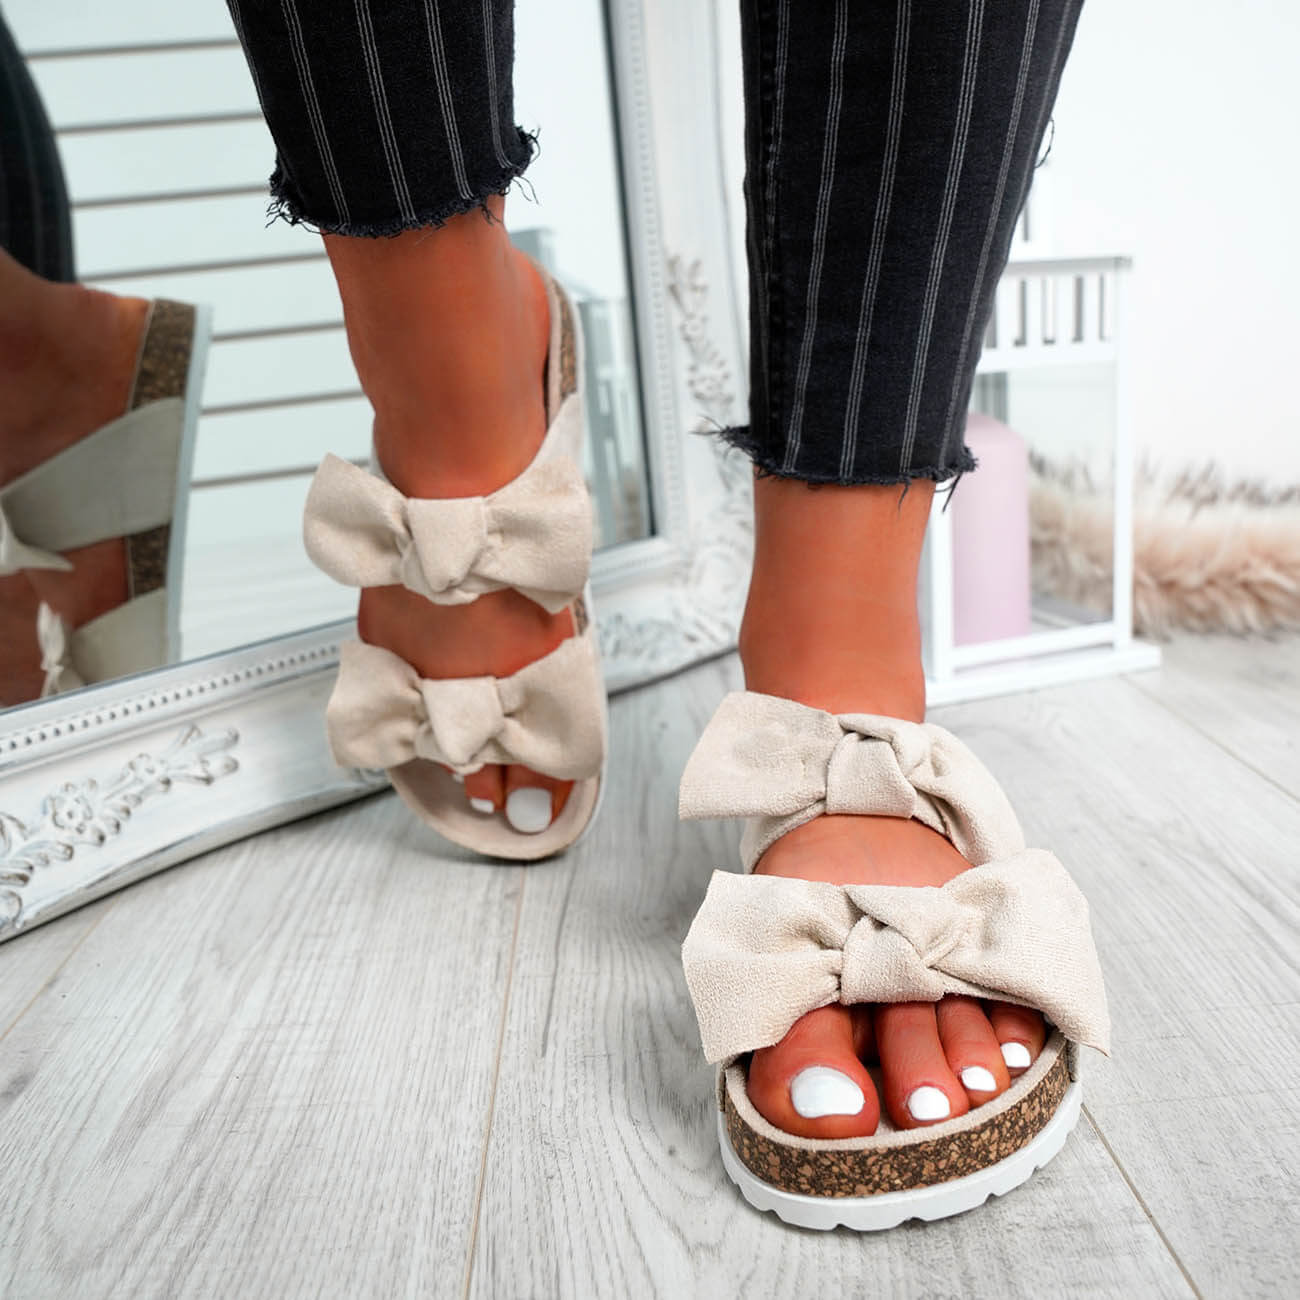 WOMENS-LADIES-PEEP-TOE-SLIP-ON-DOUBLE-BOW-FLAT-SANDALS-PARTY-CLUB-SUMMER-SHOES thumbnail 10